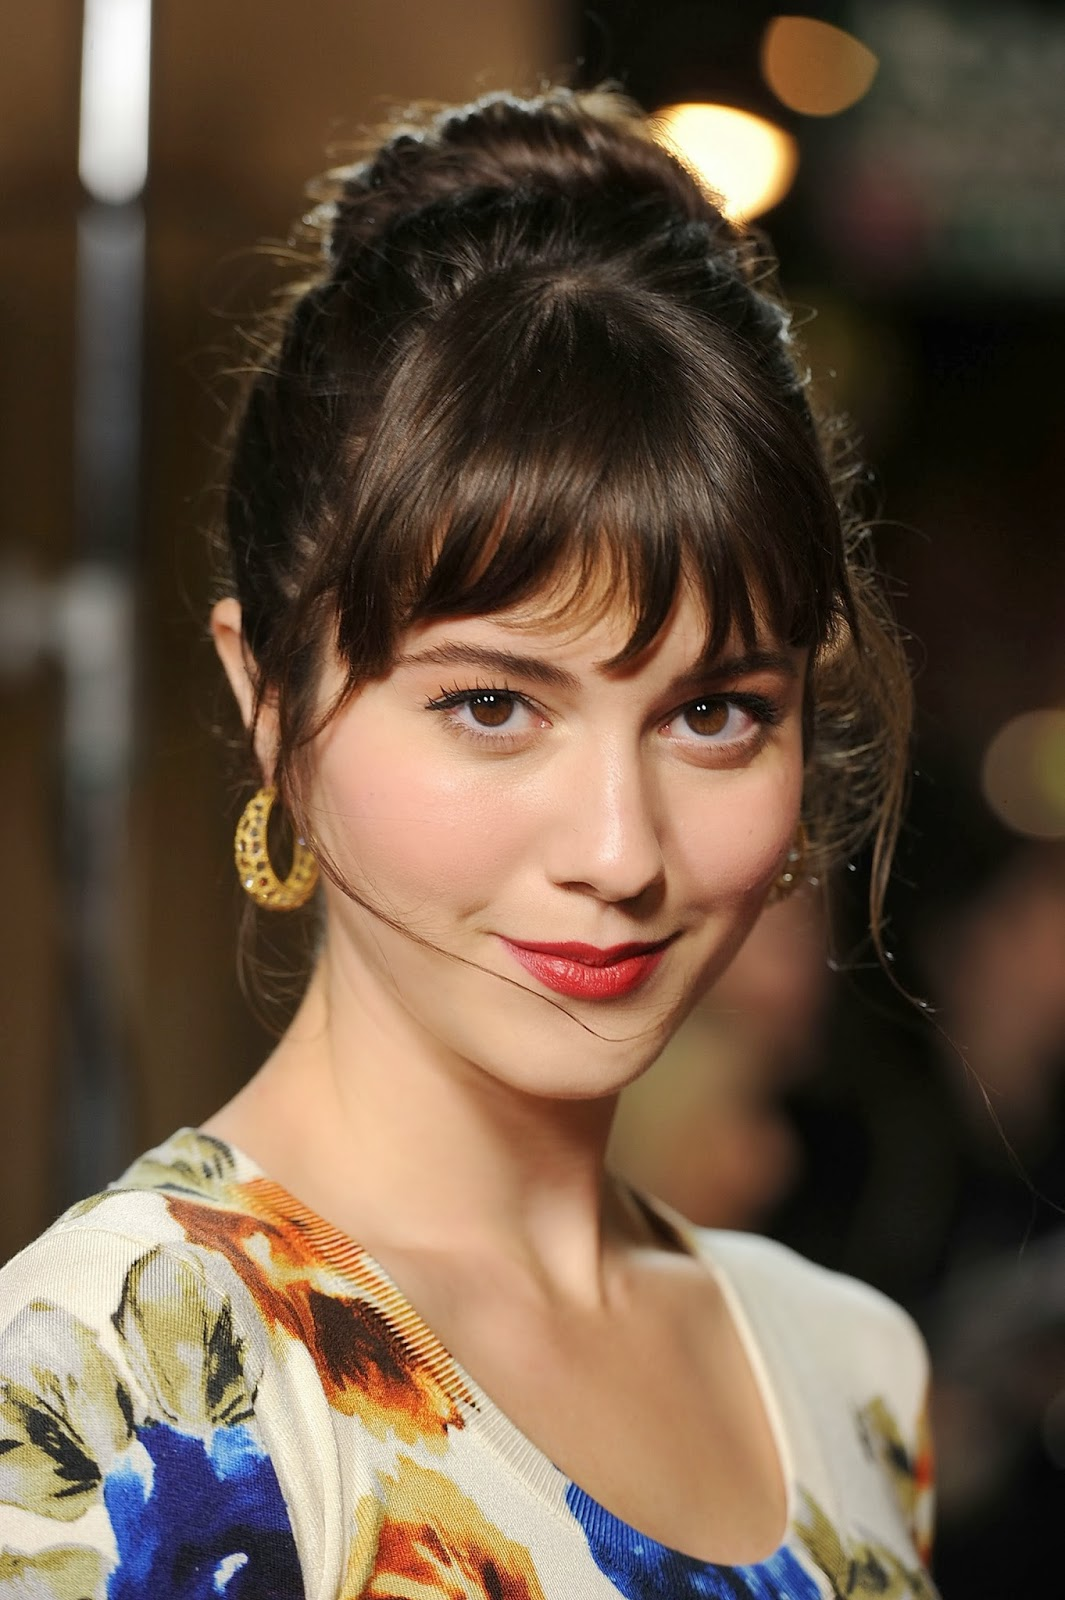 Latest celebrity photos mary elizabeth winstead hot and for 10 pics